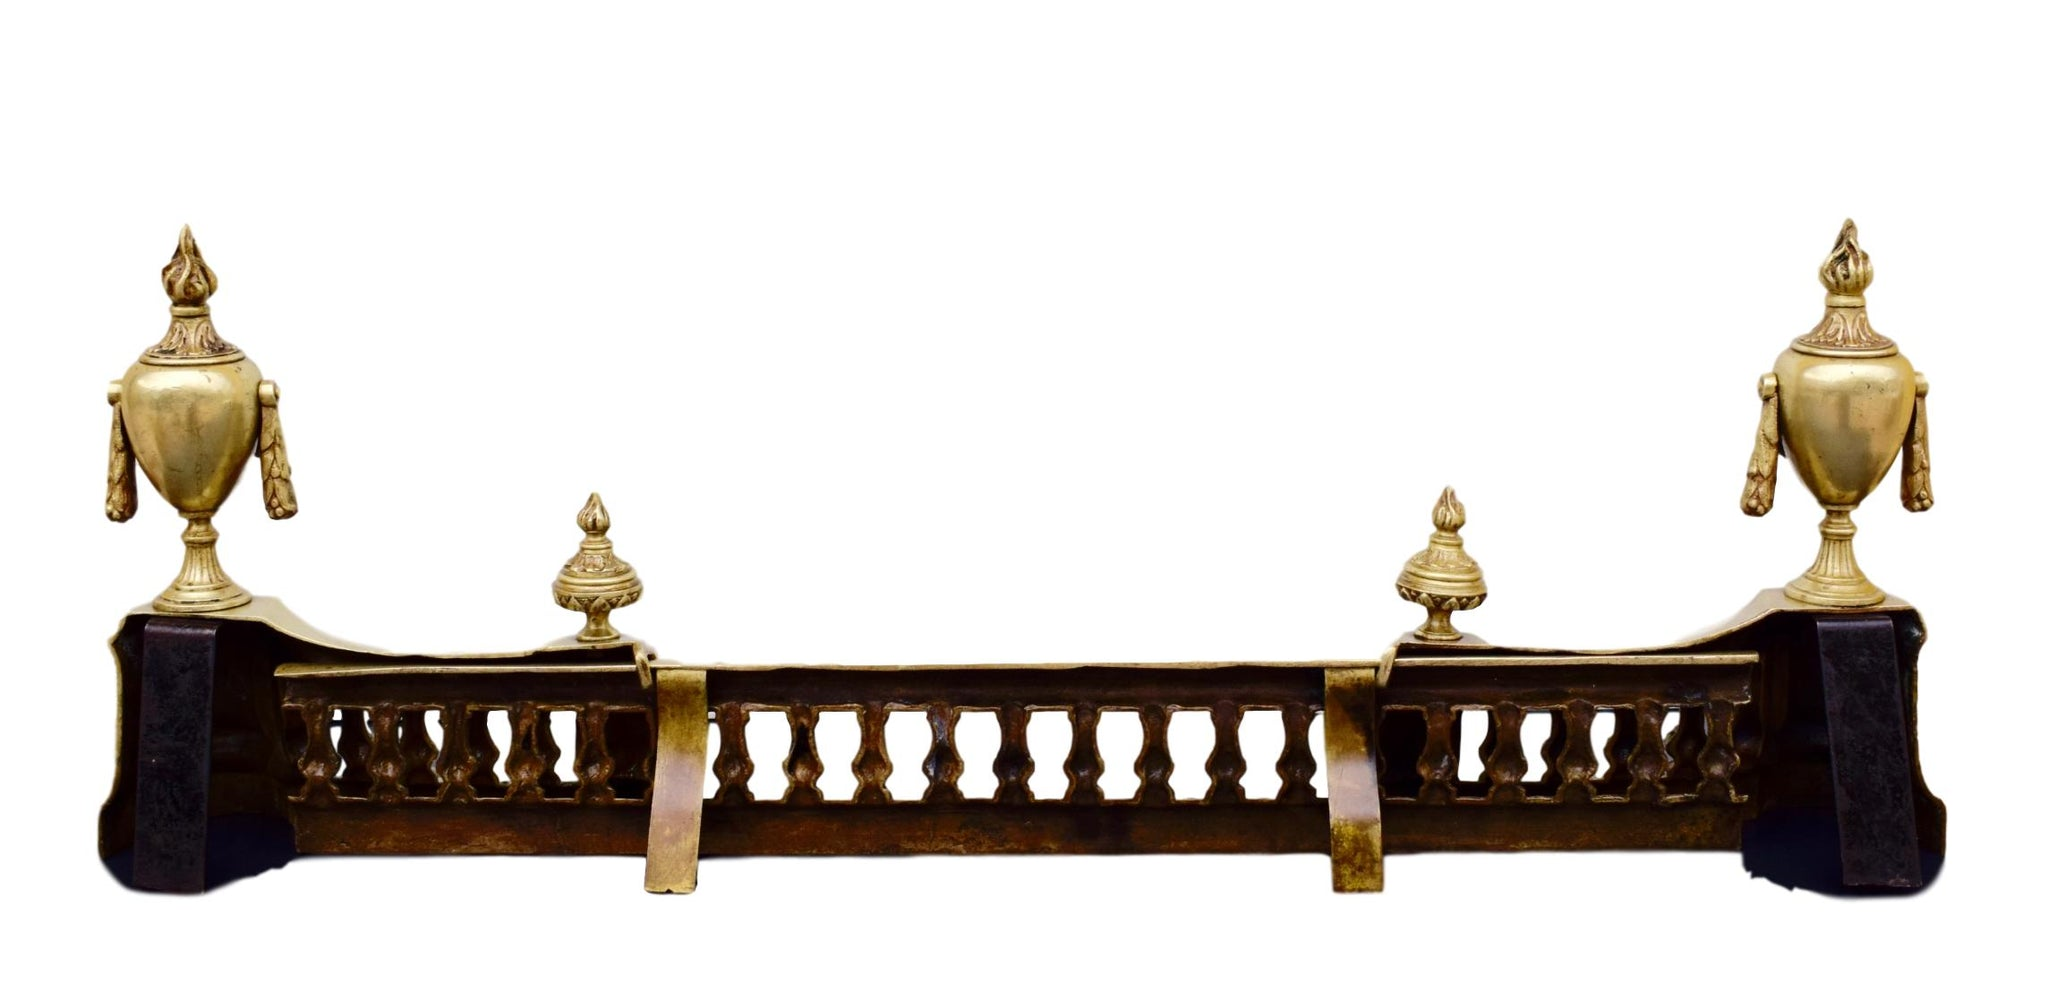 Louis XVI Fireplace Set